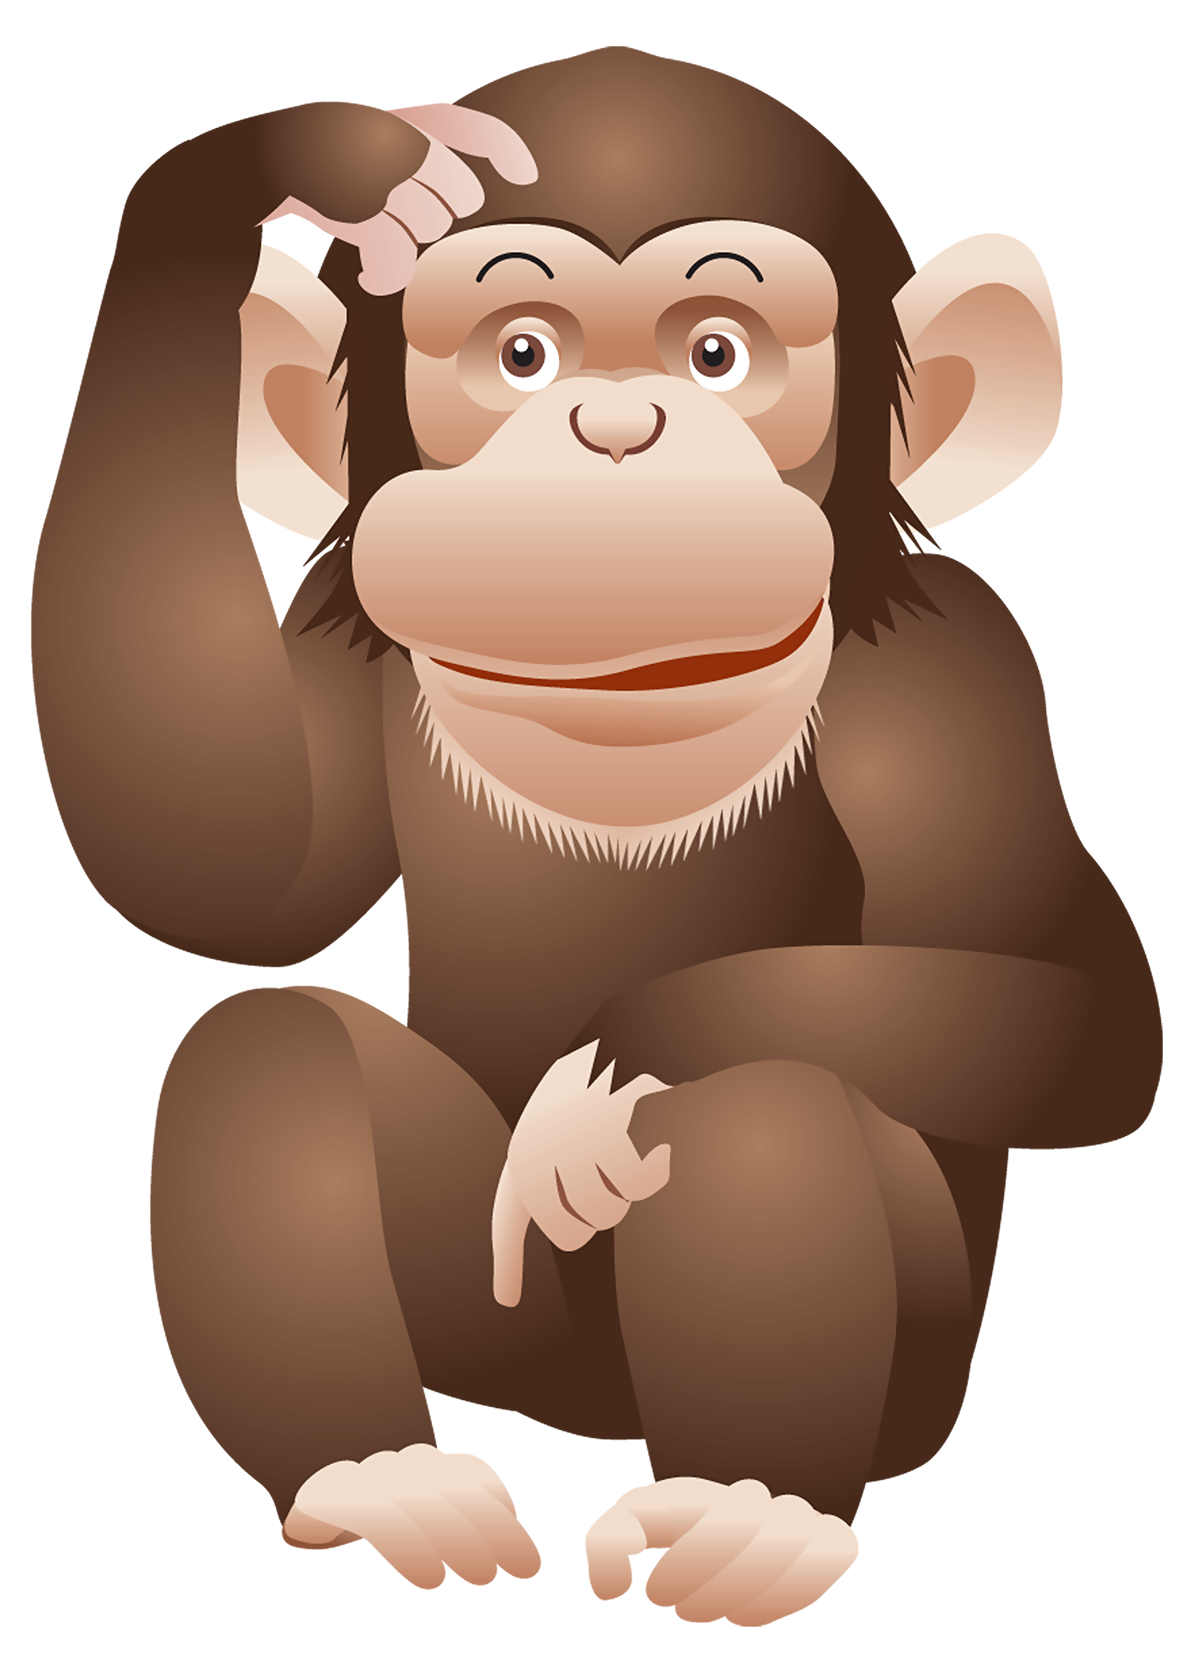 Image gallery yopriceville high. Monkey png images banner freeuse